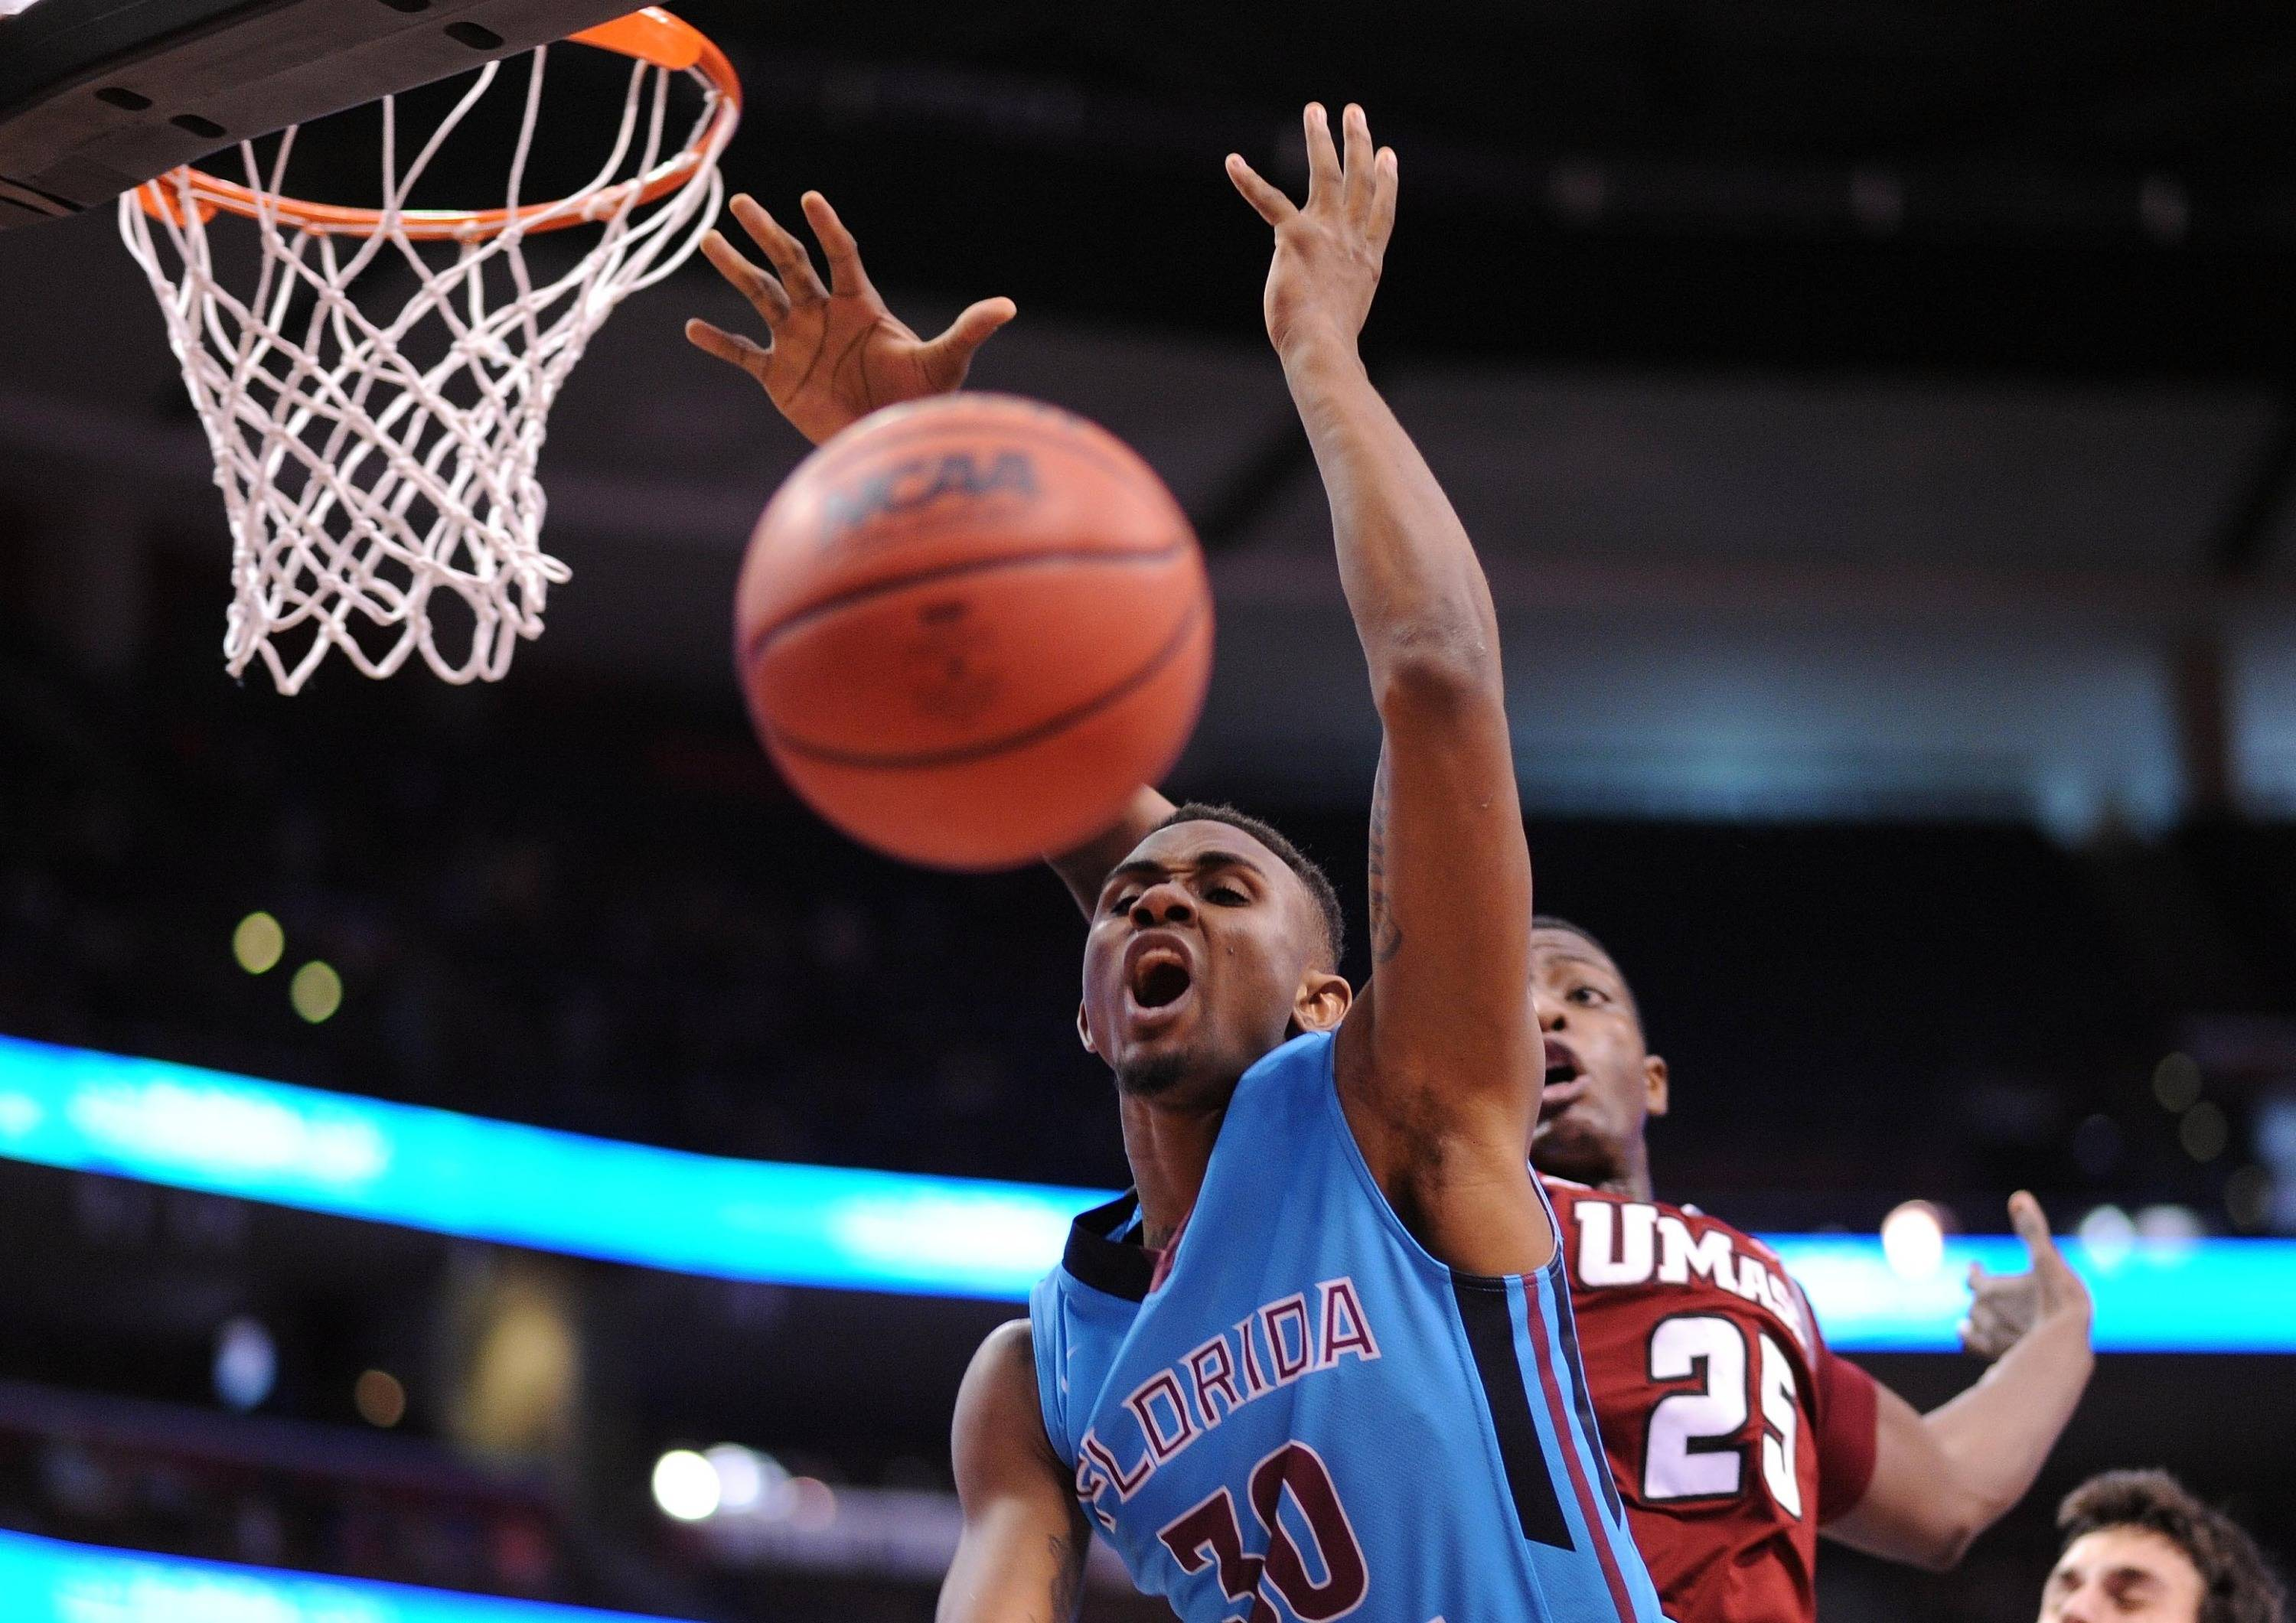 Dec 21, 2013; Sunrise, FL, USA; Florida State Seminoles guard Ian Miller (30) is fouled by Massachusetts Minutemen center Cady Lalanne (25) during the first half at BB&T Center. Mandatory Credit: Steve Mitchell-USA TODAY Sports